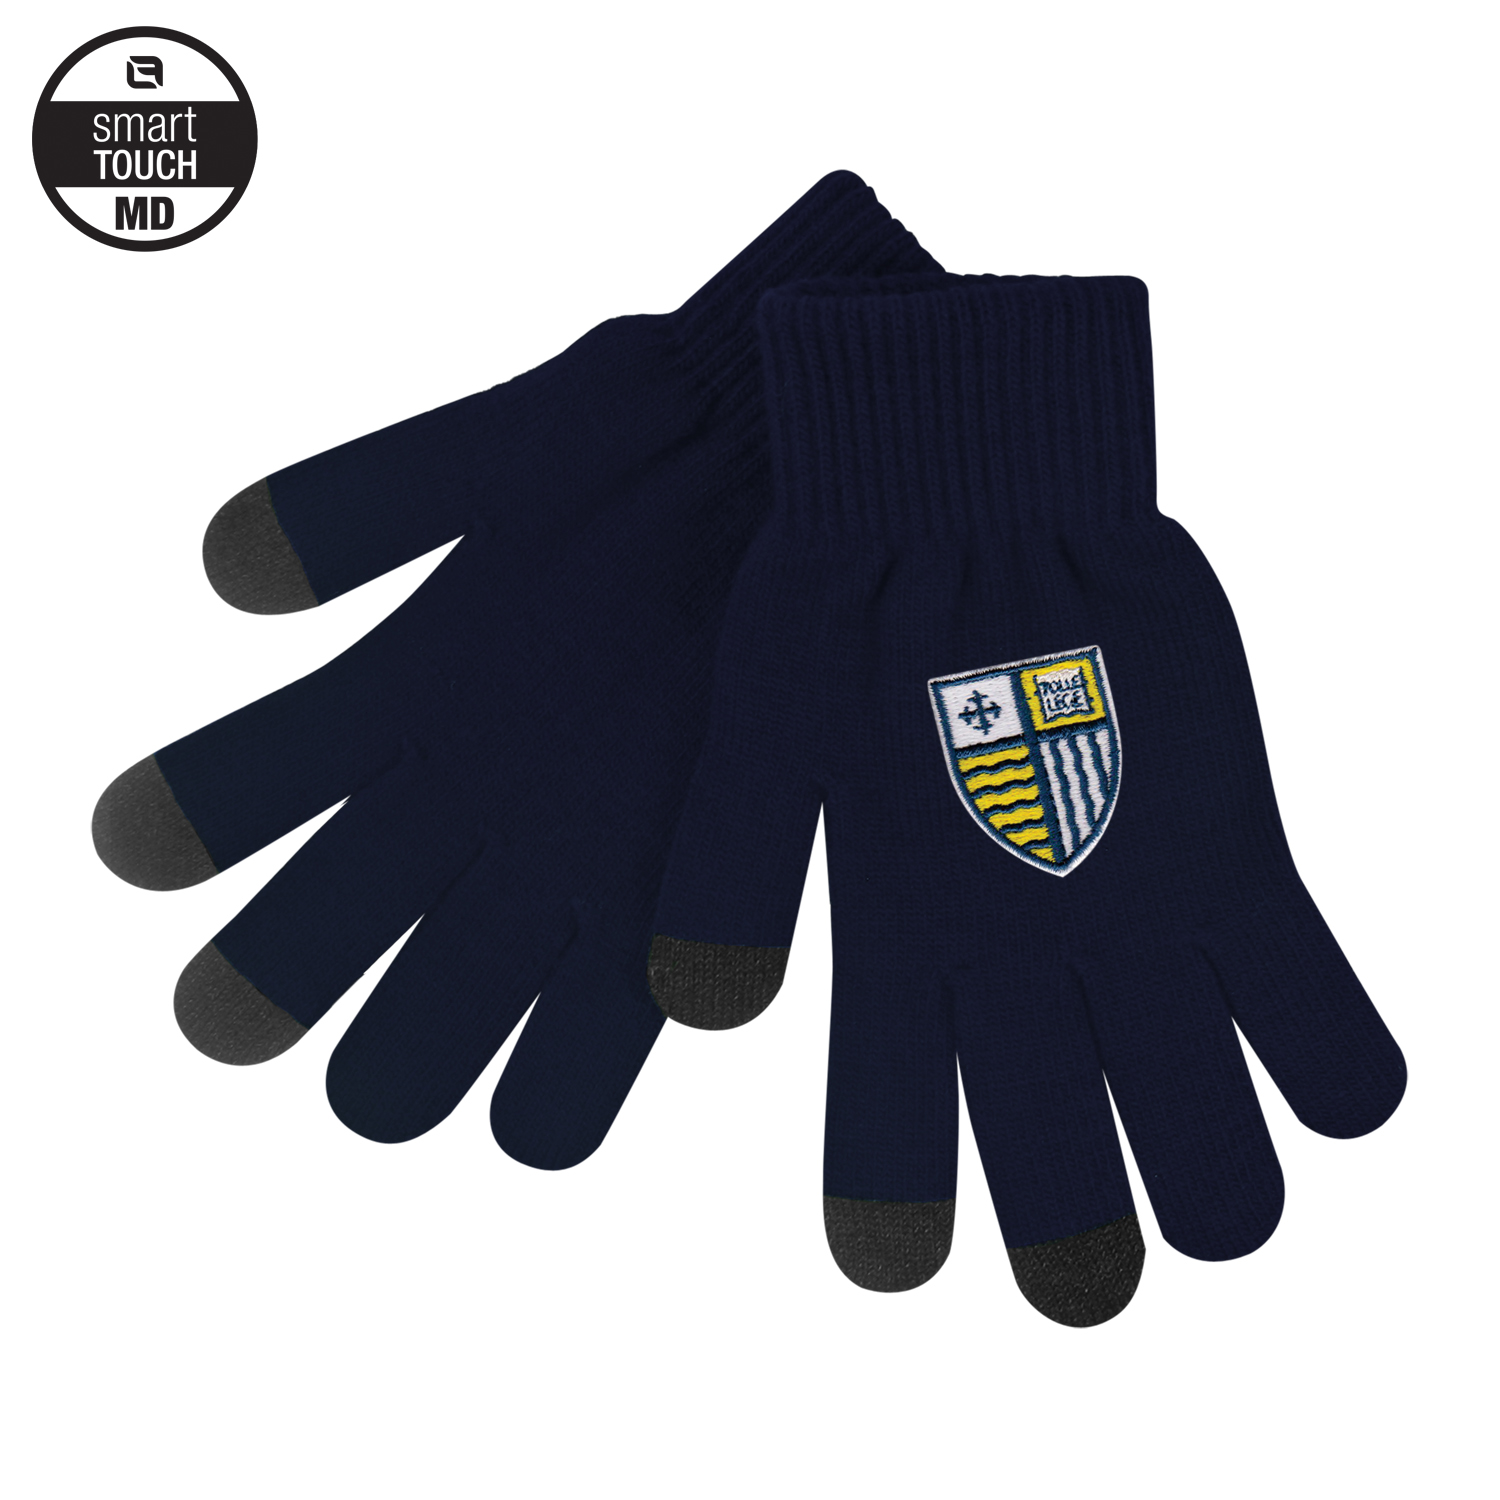 Navy smart touch gloves